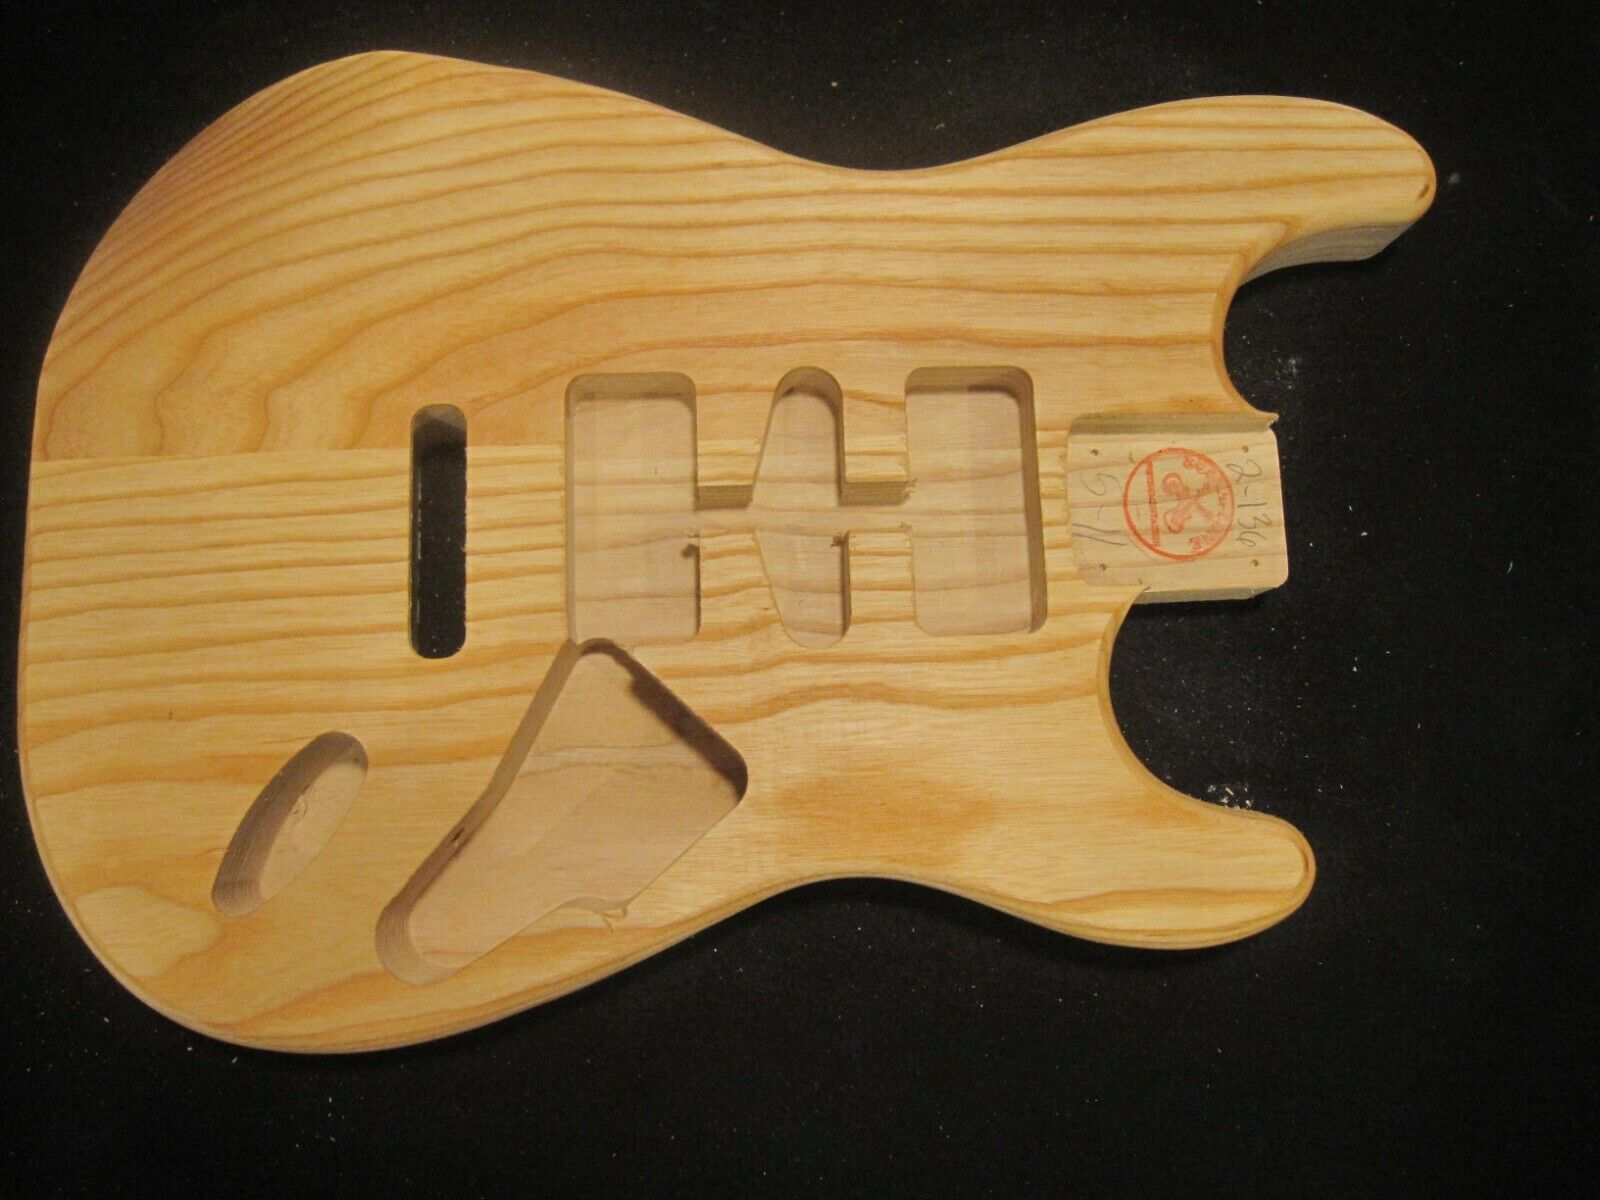 2-136 Stratocaster Body, US MADE, Unfinished, Ash - $89.99